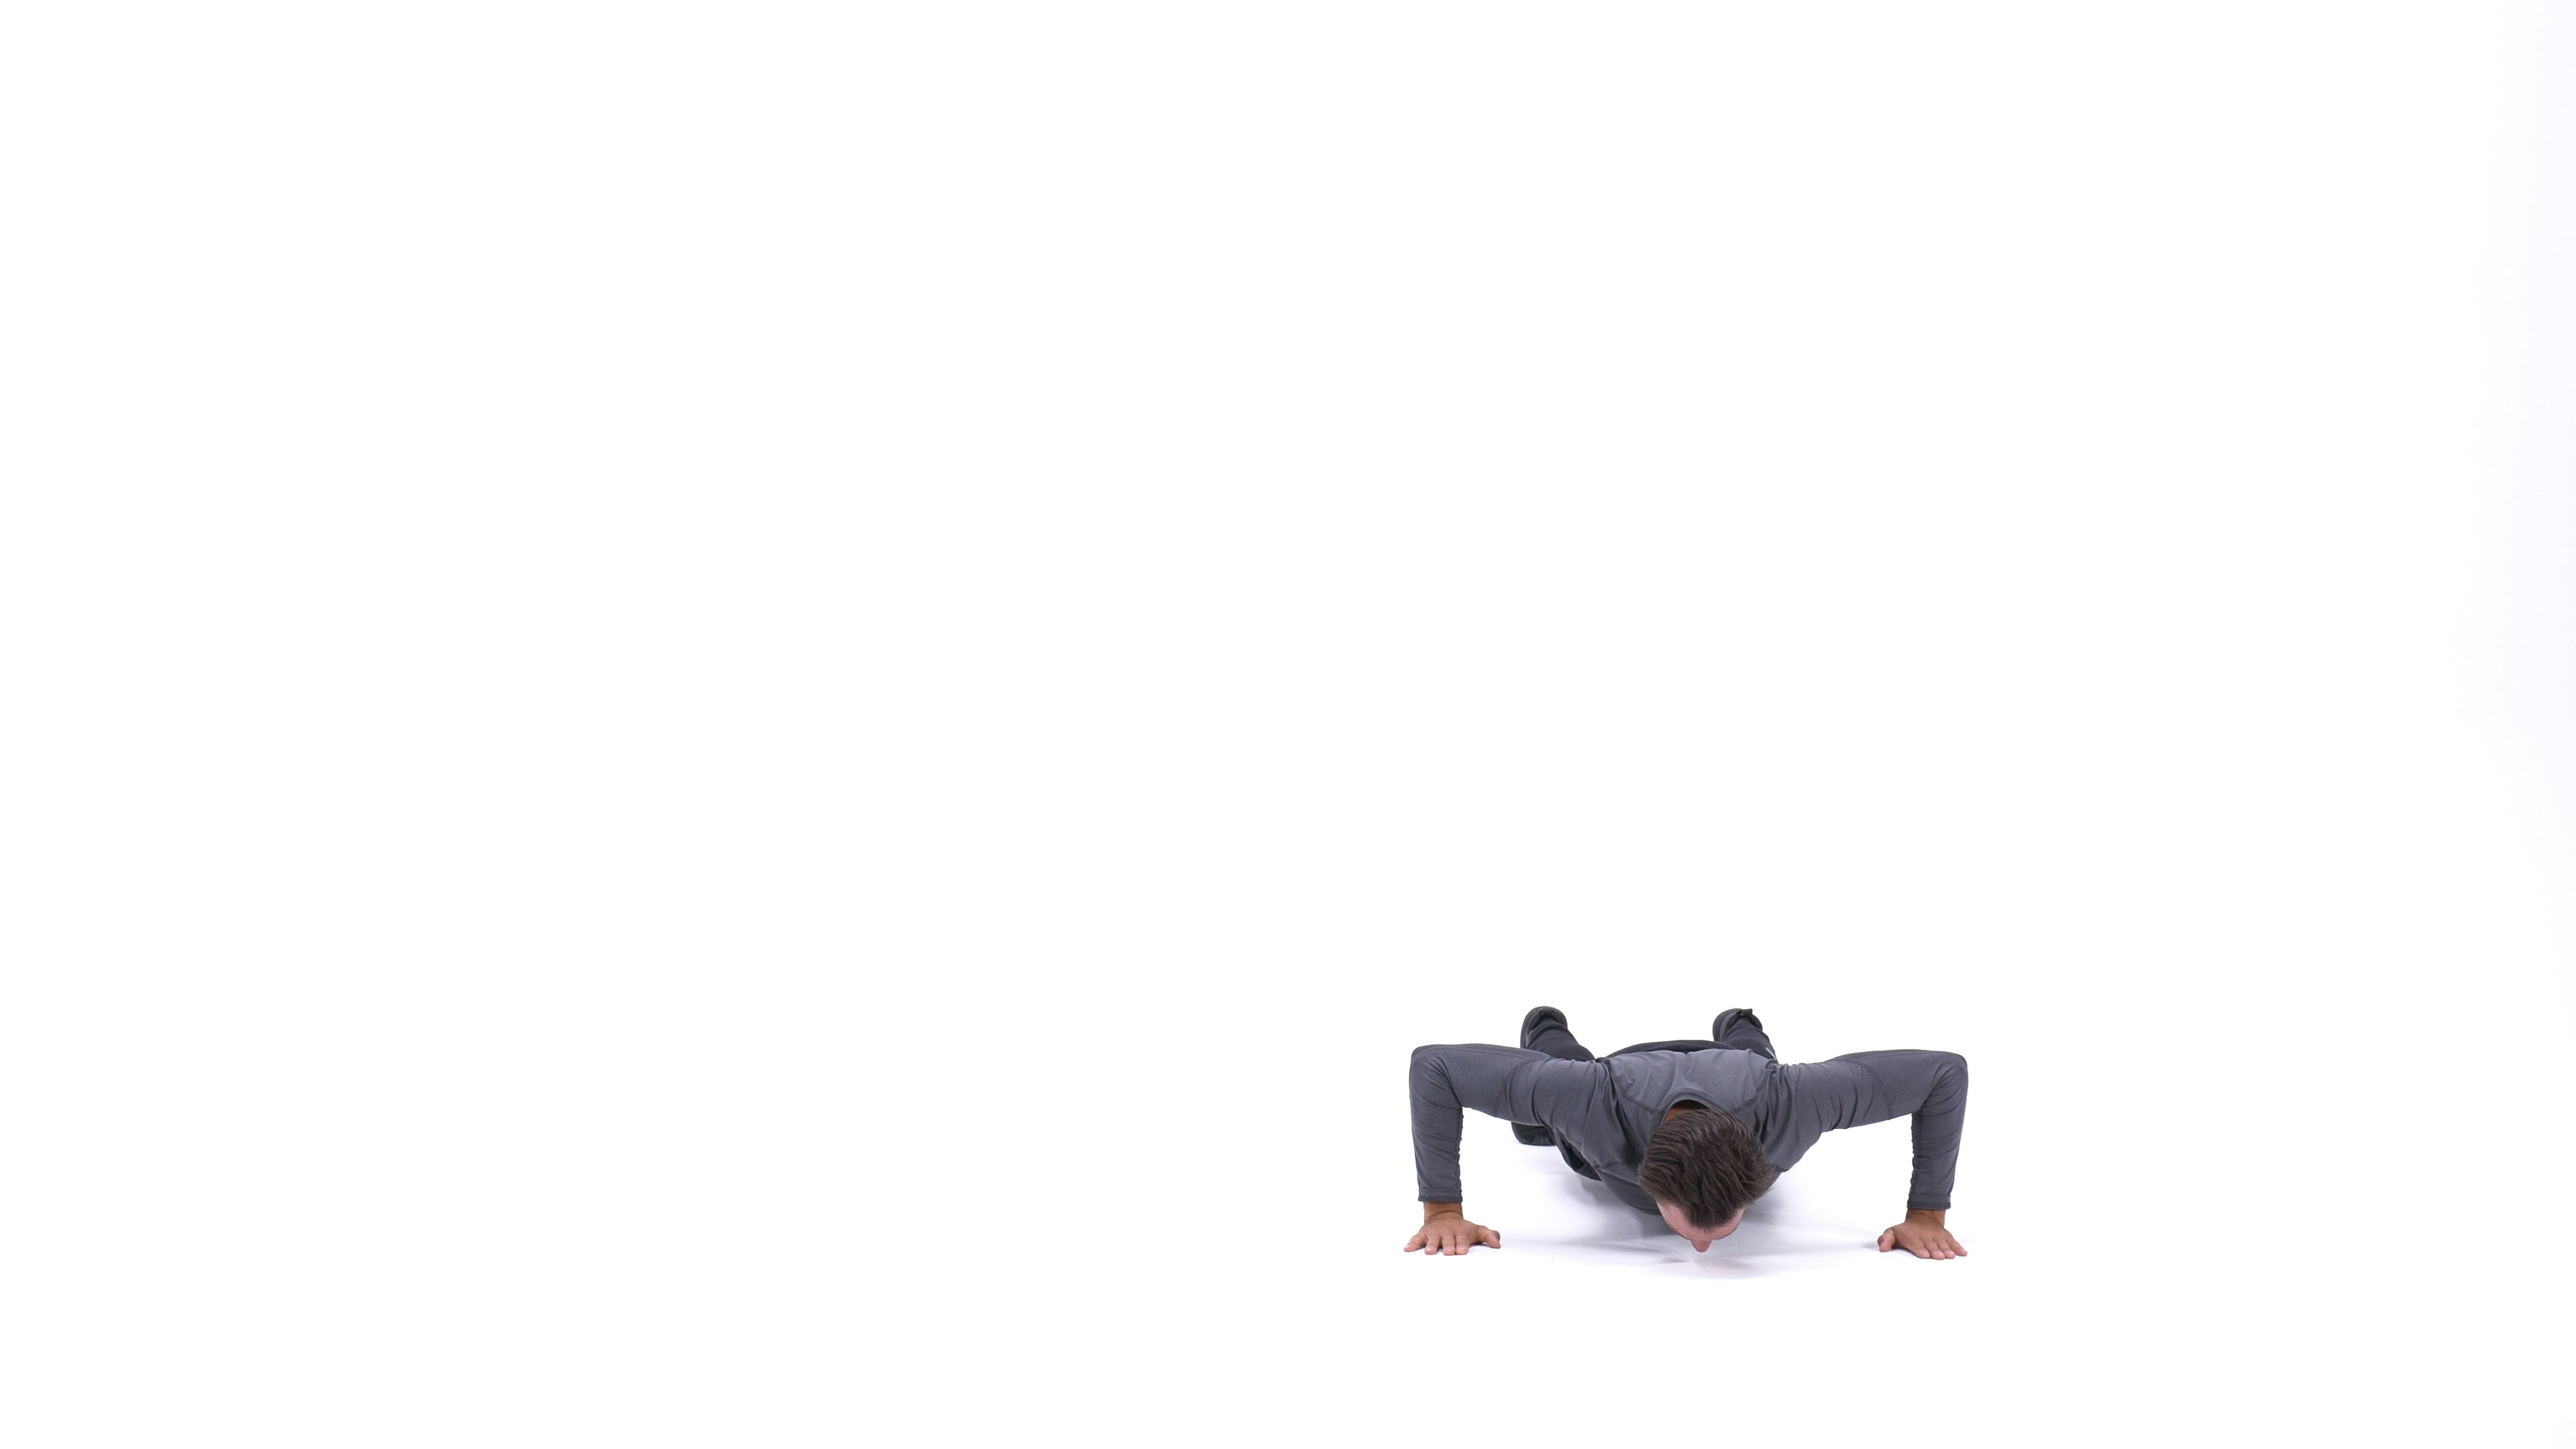 Side-to-side push-up image